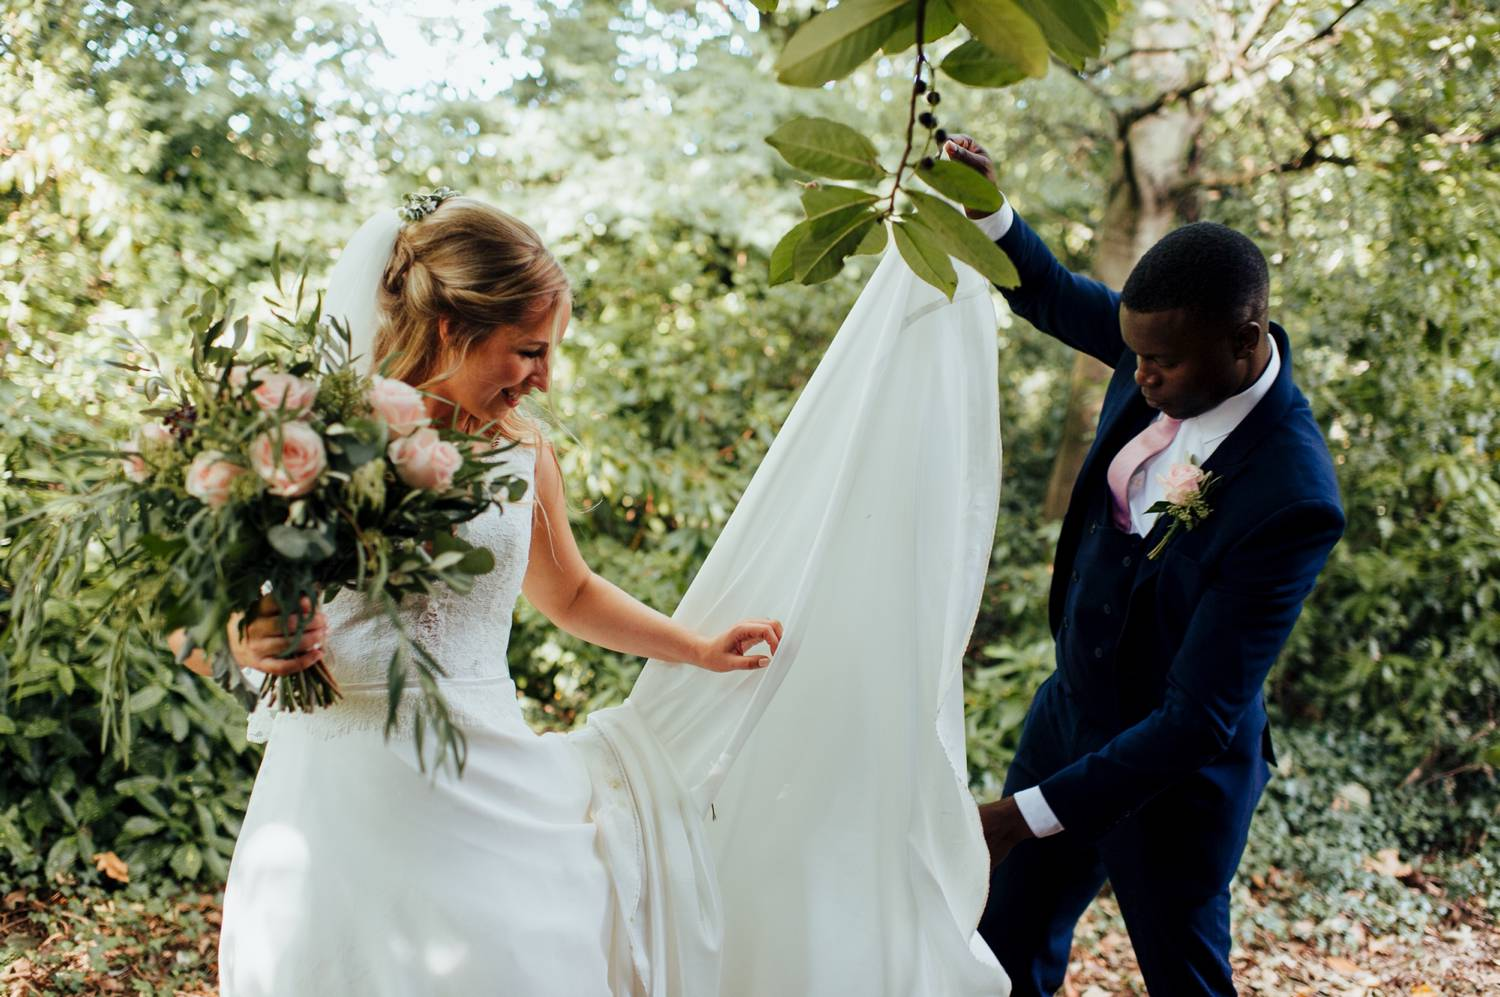 Groom helps bride with train of dress